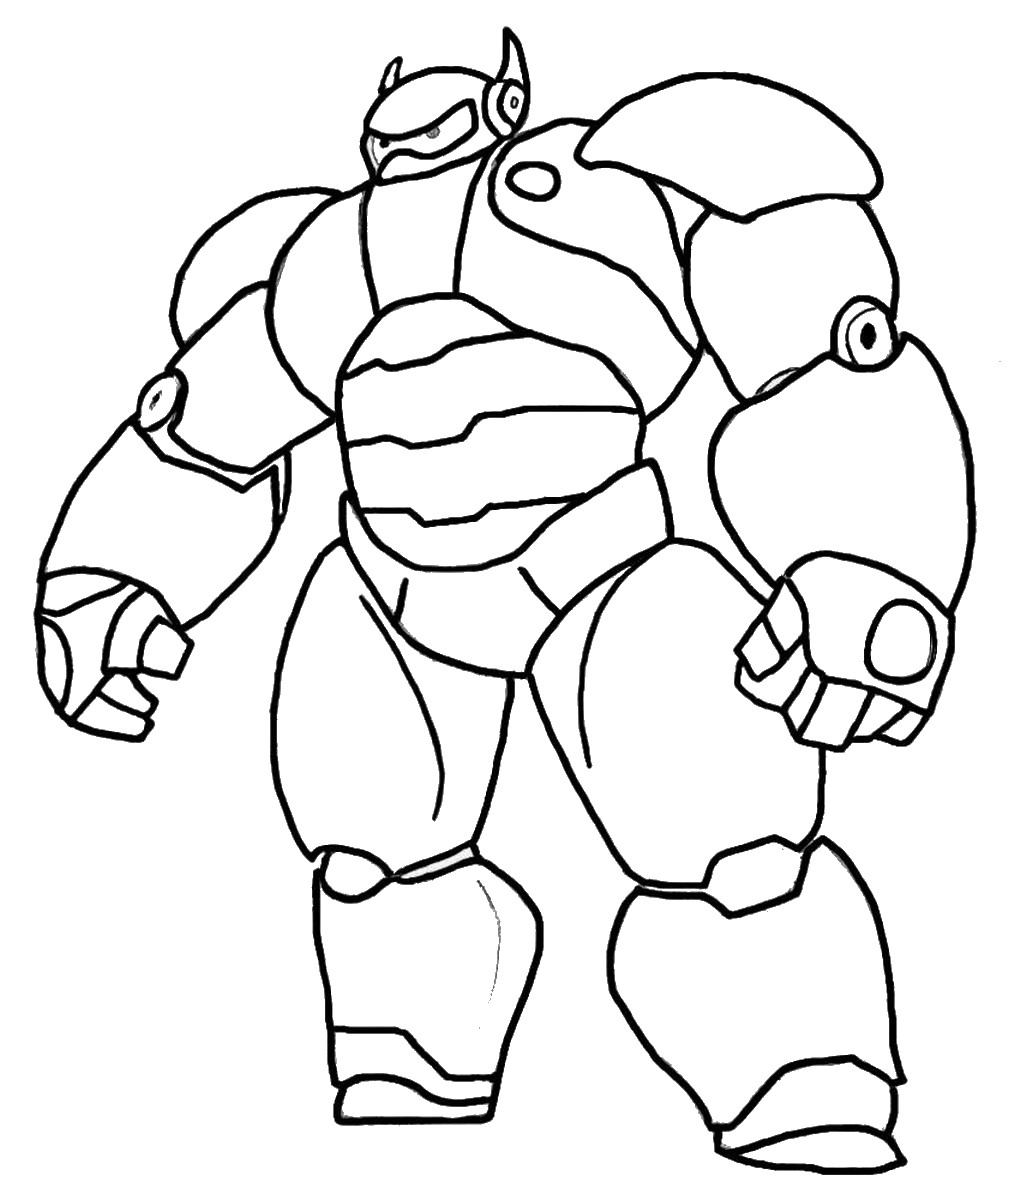 big coloring pages big hero 6 coloring pages birthday printable pages big coloring